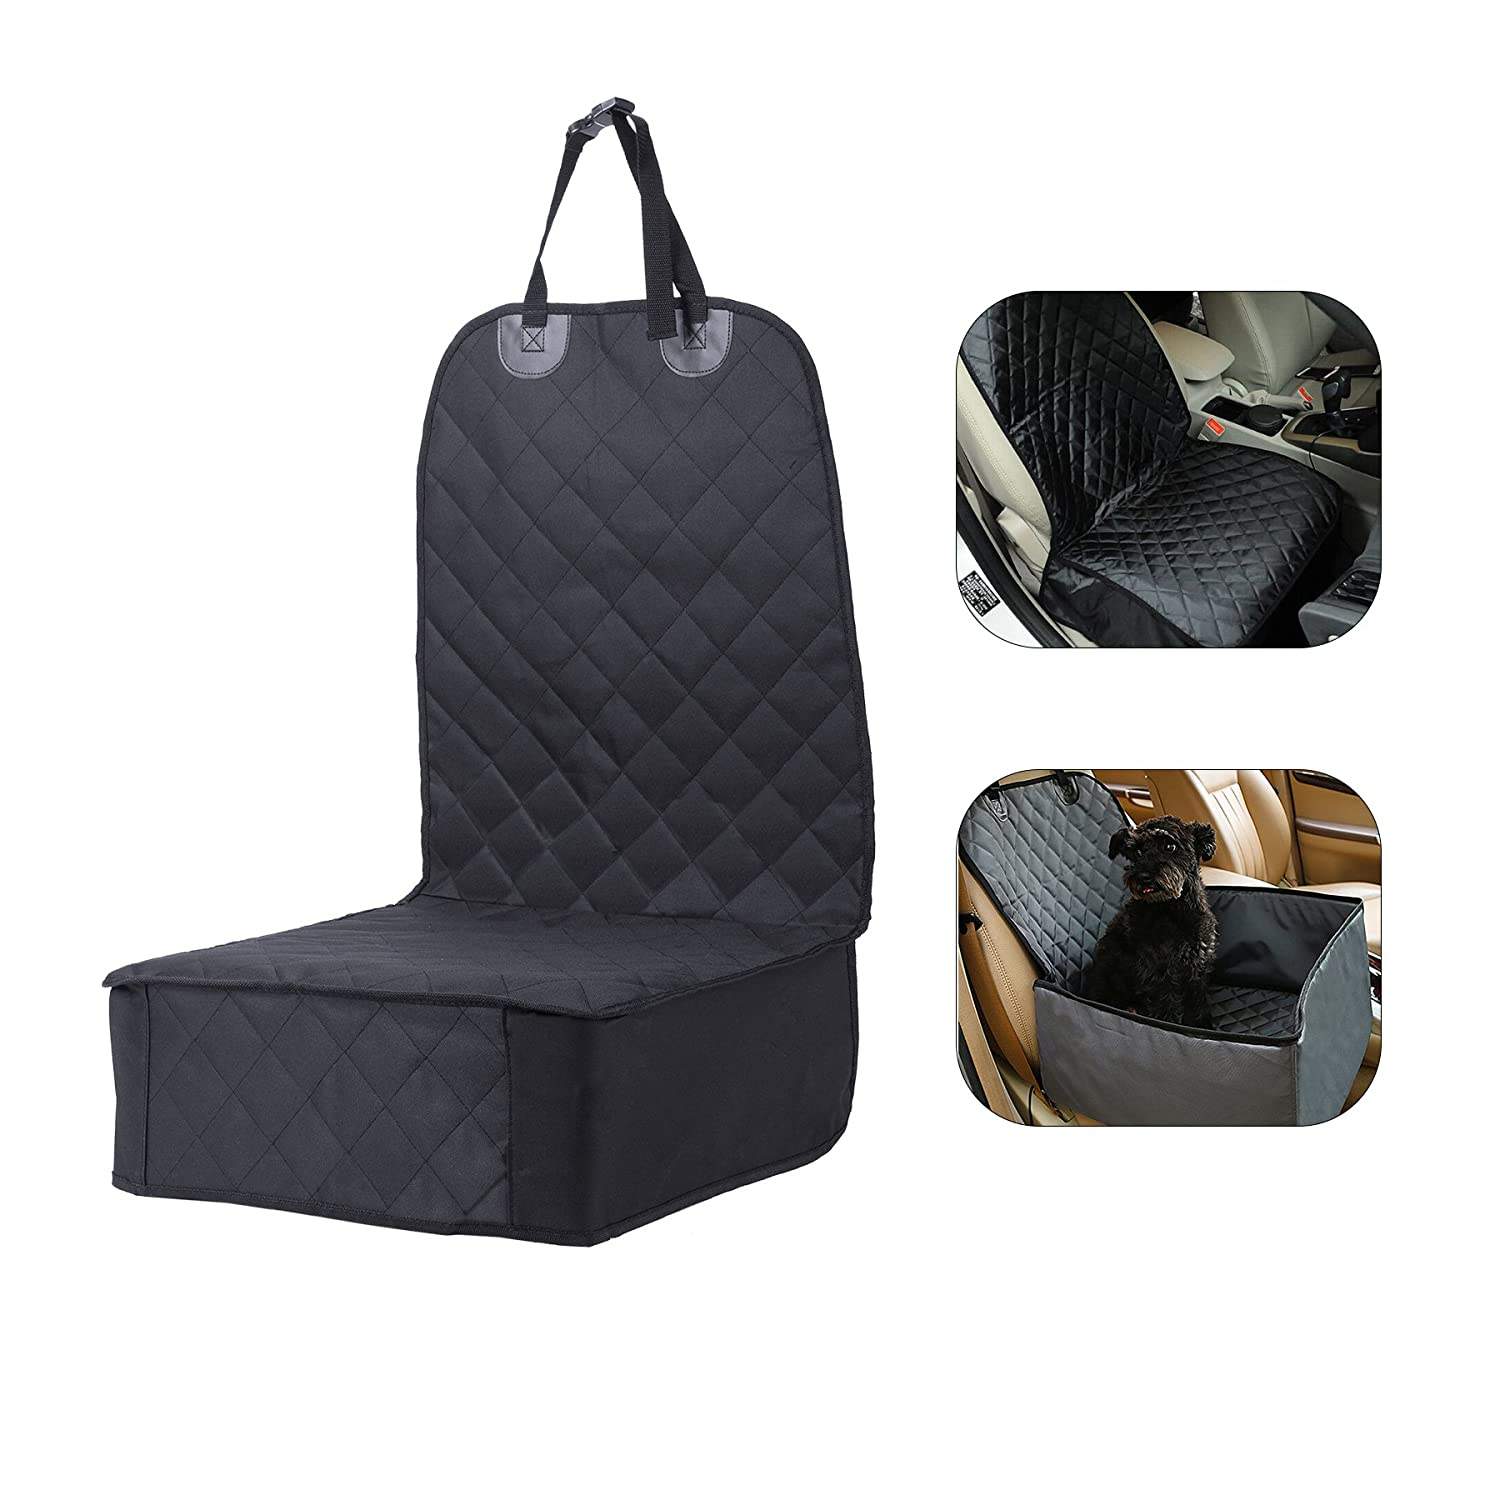 CO-Z 40  x 20.5  Padded Car Pet Front Seat Cover Waterproof & Non-Skid for a Truck, SUV Cars